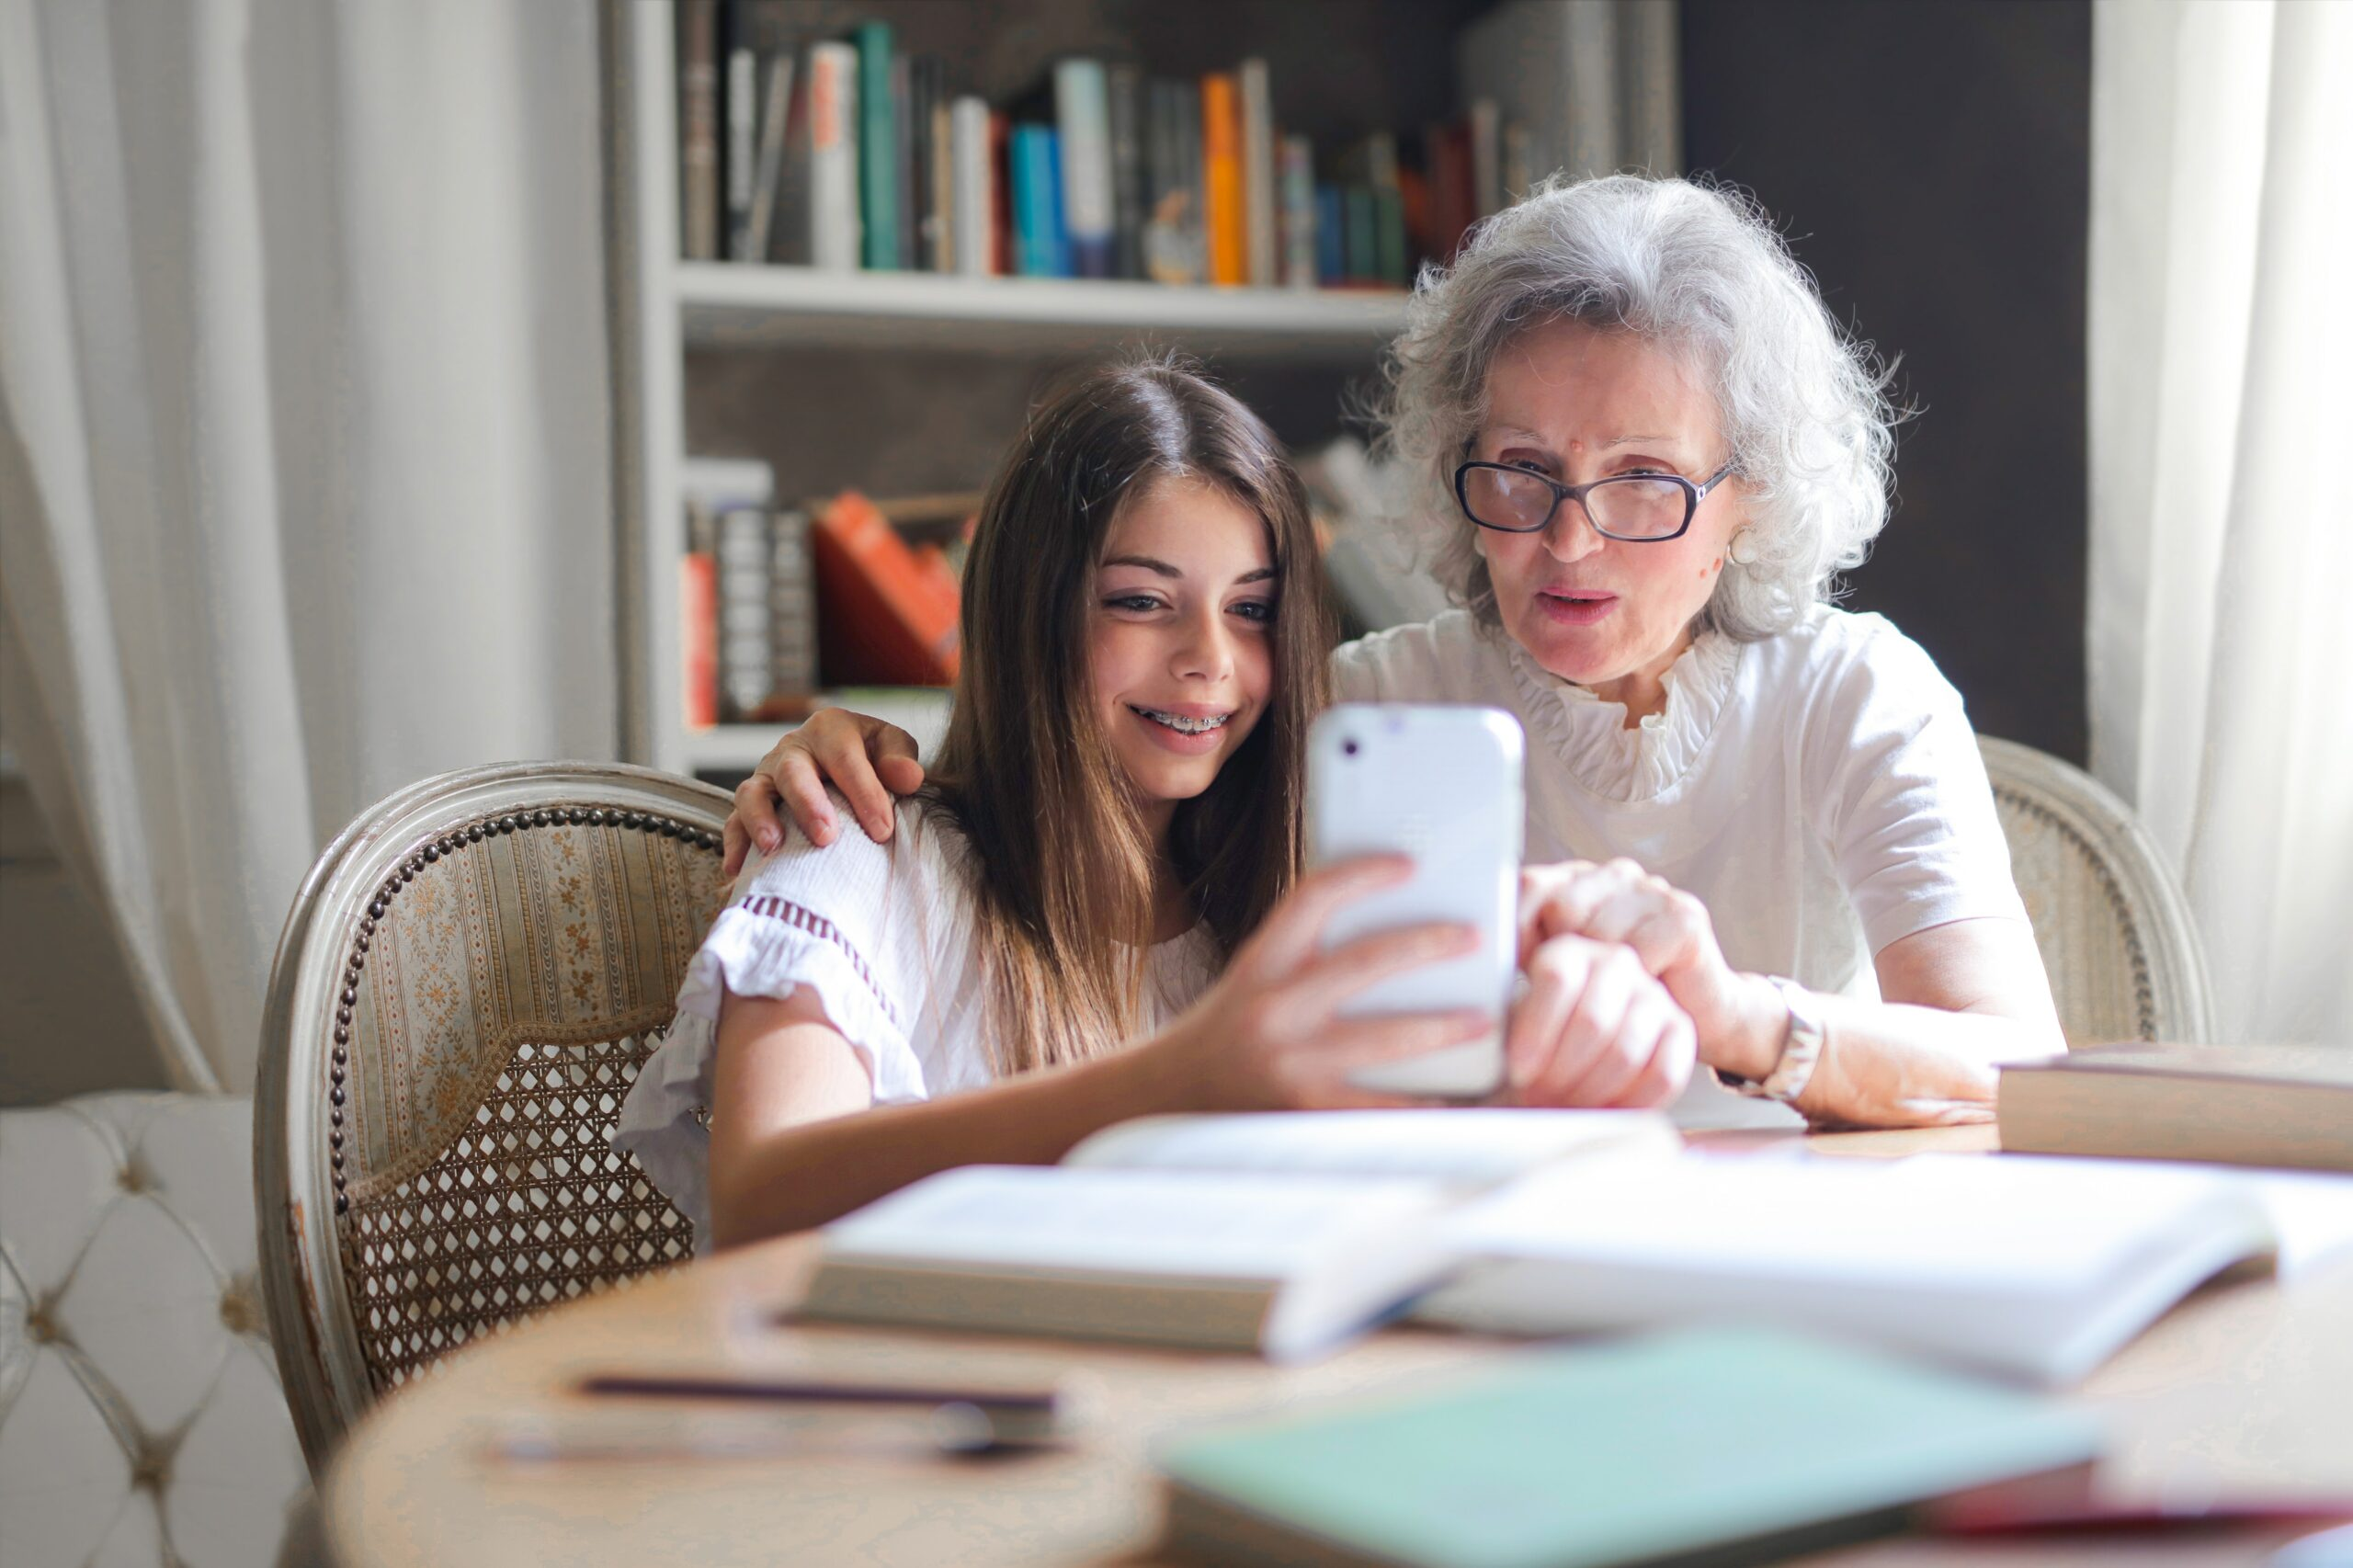 A woman and her granddaughter look at a phone together - one of the most well-known ways of of keeping in touch with kids